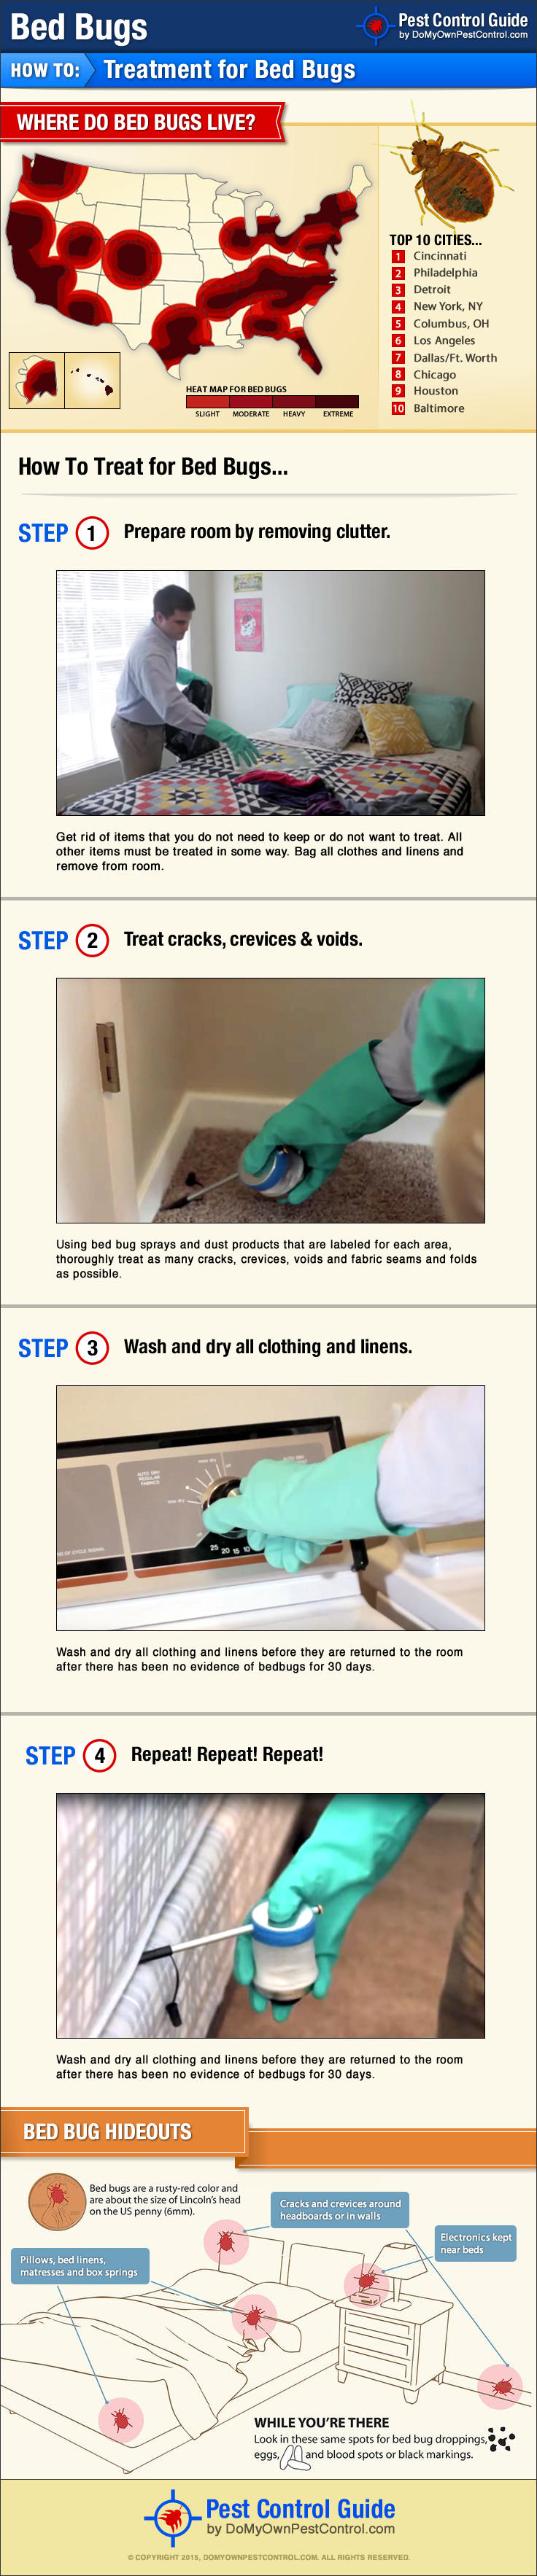 how to get rid of kill bed bugs yourself diy bed bug treatment bed bugs bed bugs. Black Bedroom Furniture Sets. Home Design Ideas